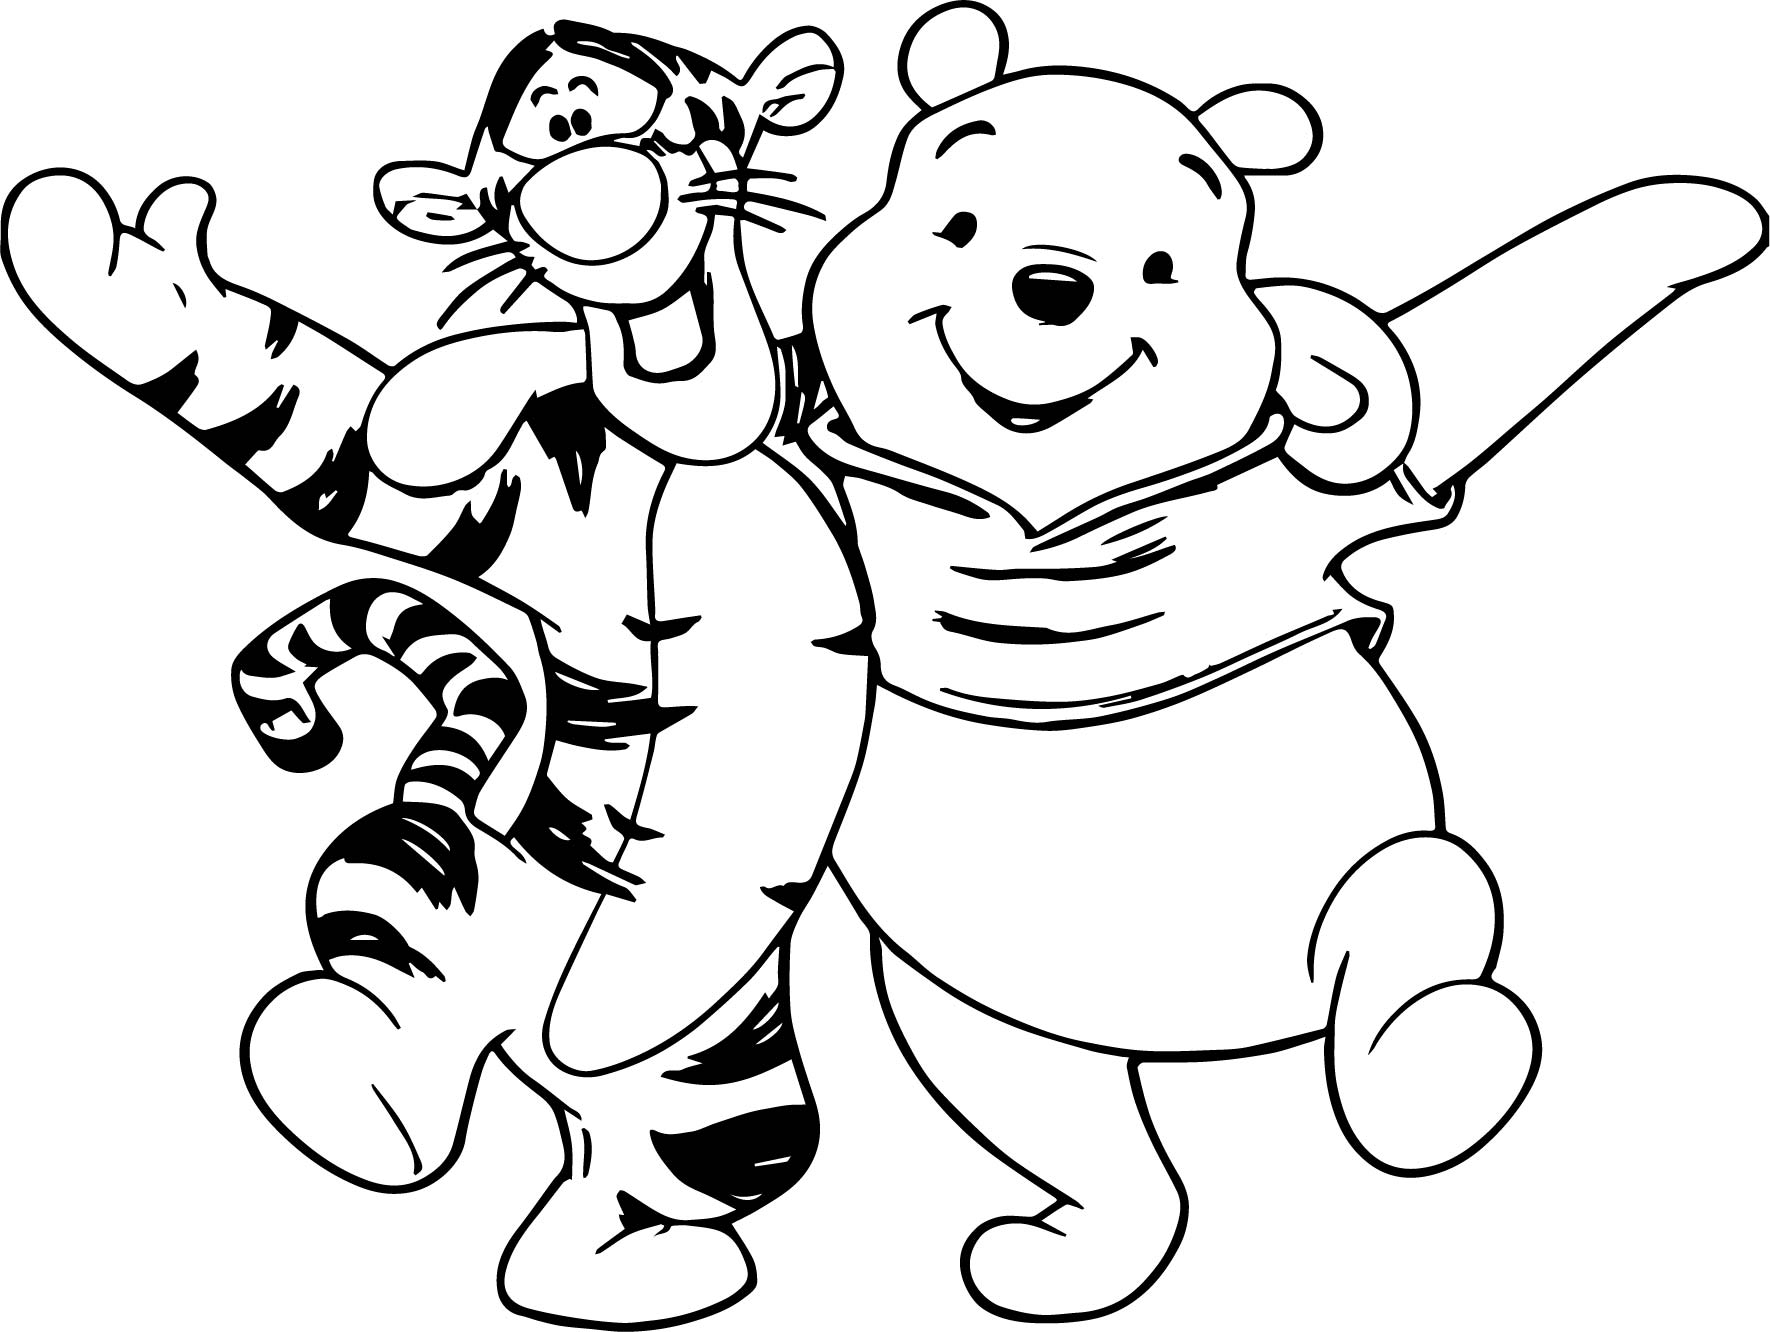 Winnie The Pooh Friend Together Coloring Page